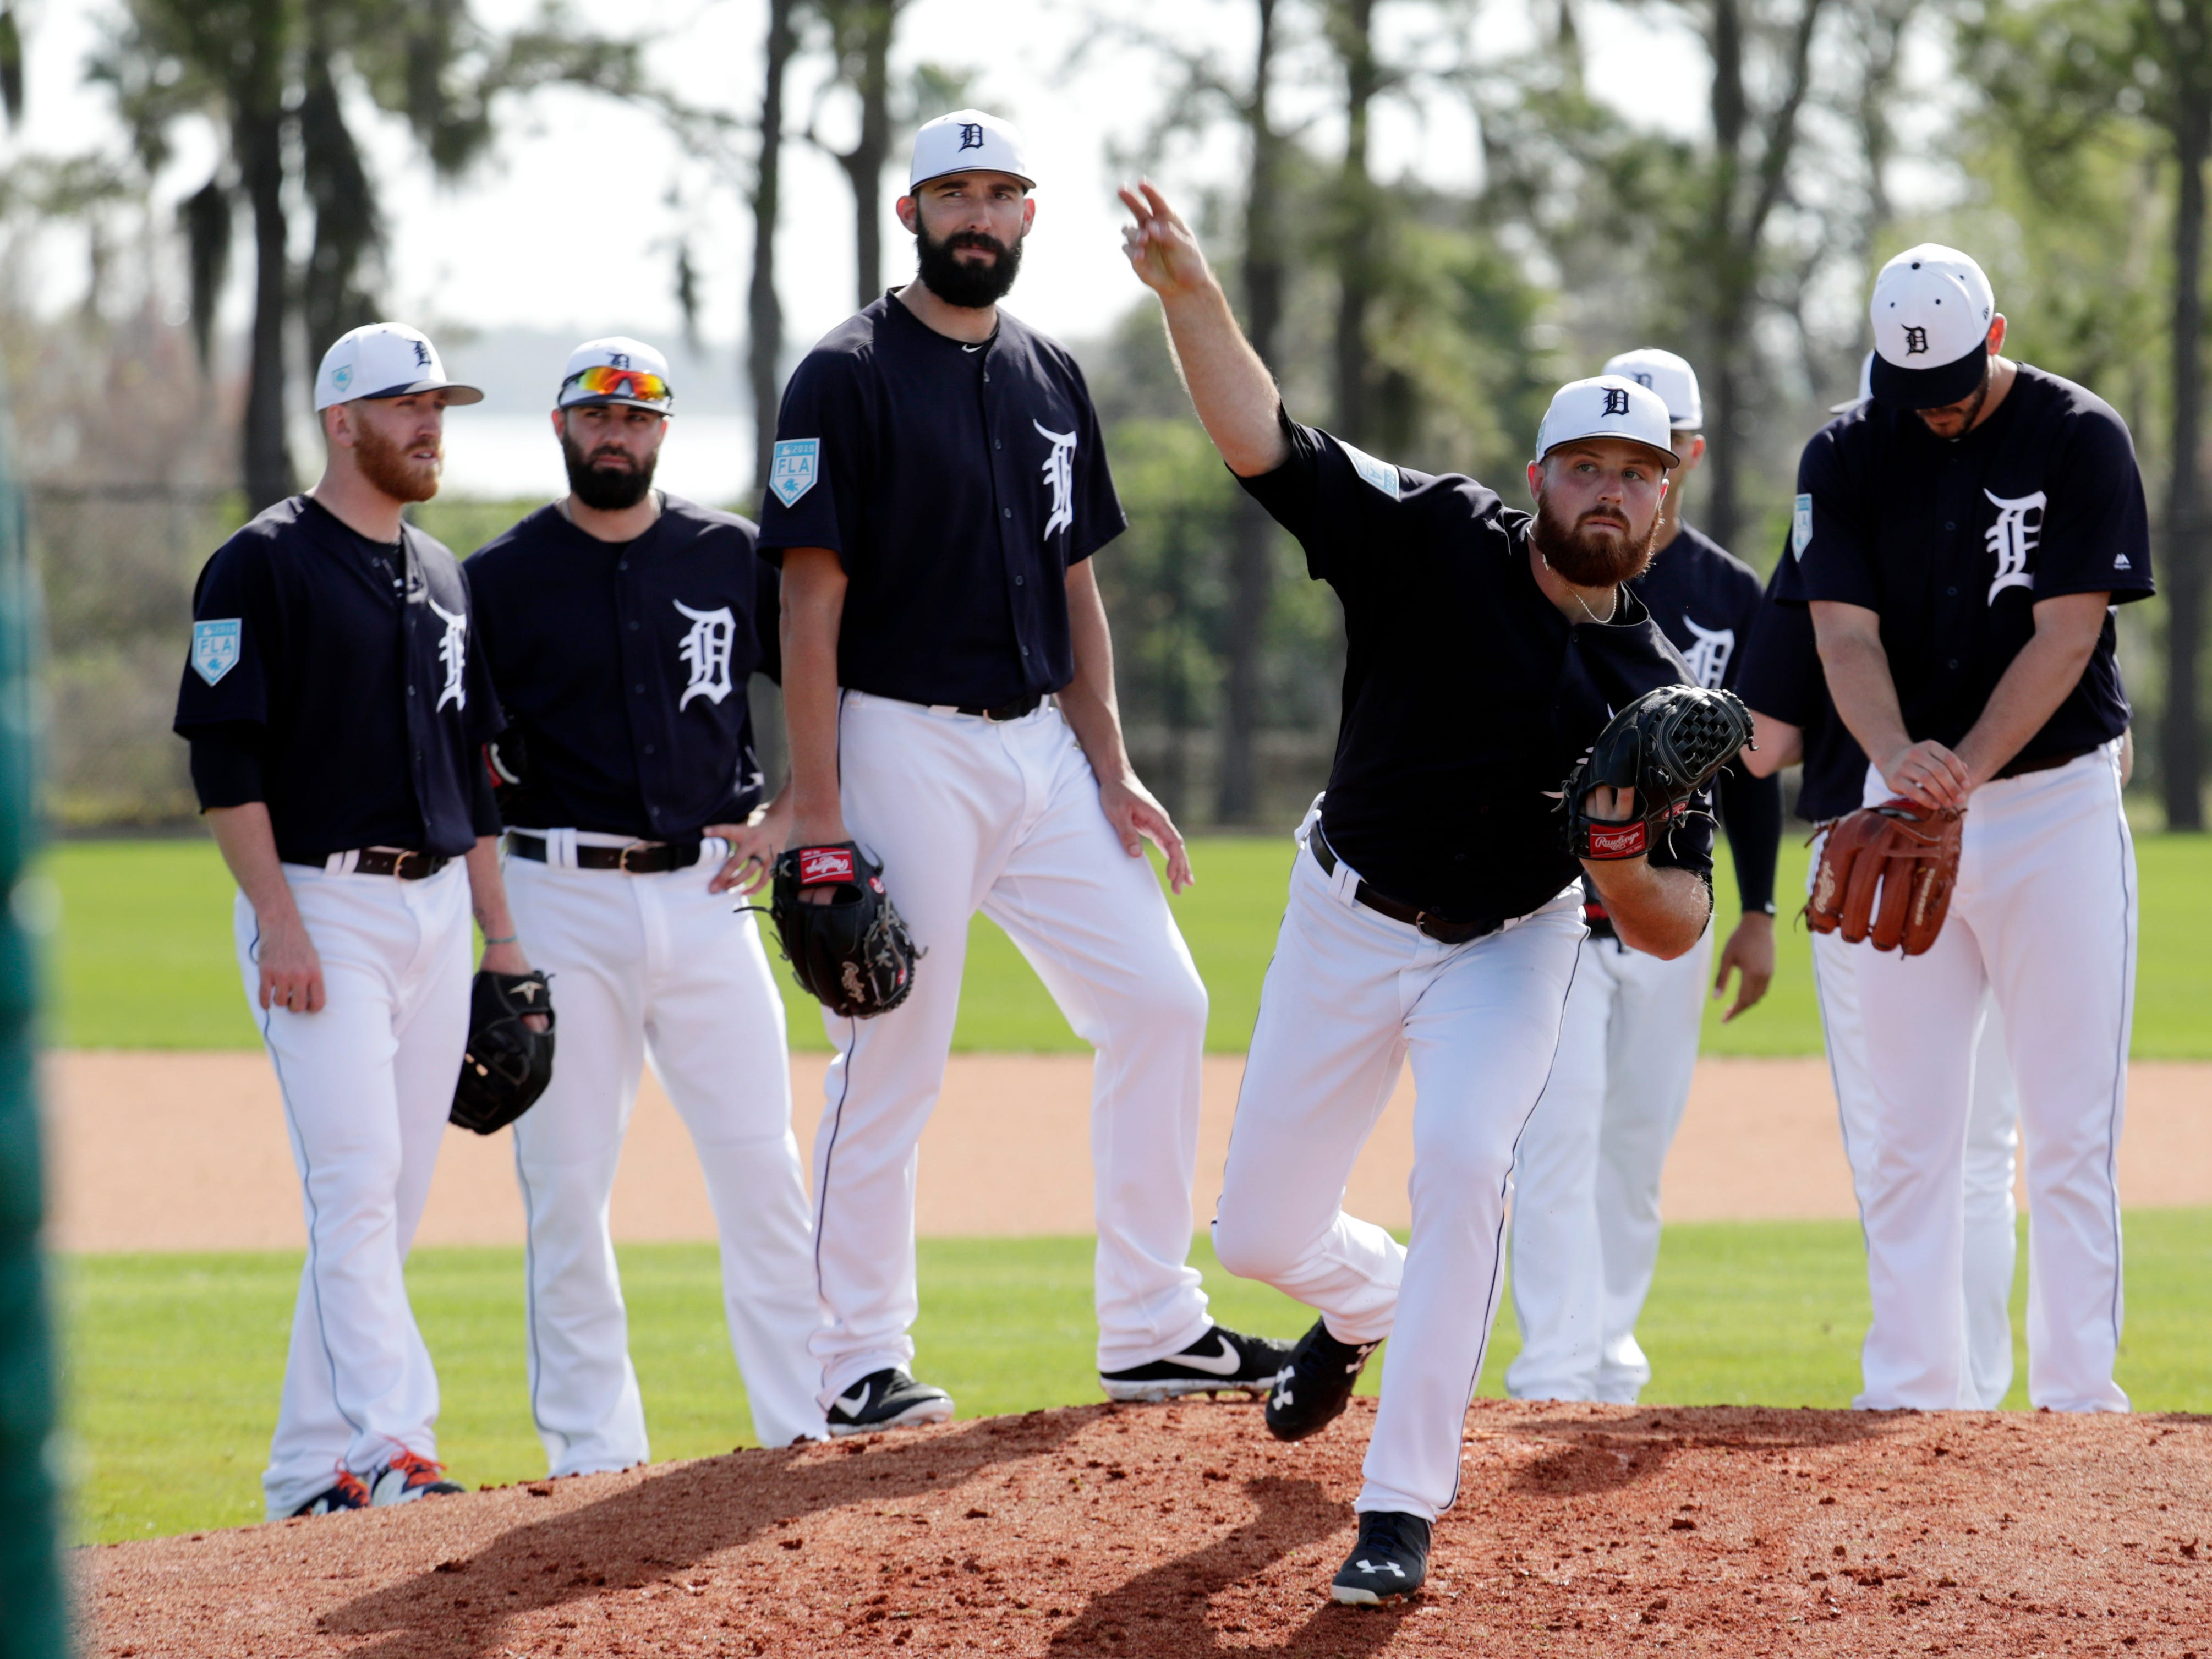 Detroit Tigers relief pitcher Buck Farmer works on a drill at the Tigers spring training baseball facility, Friday, Feb. 15, 2019, in Lakeland, Fla. (AP Photo/Lynne Sladky)